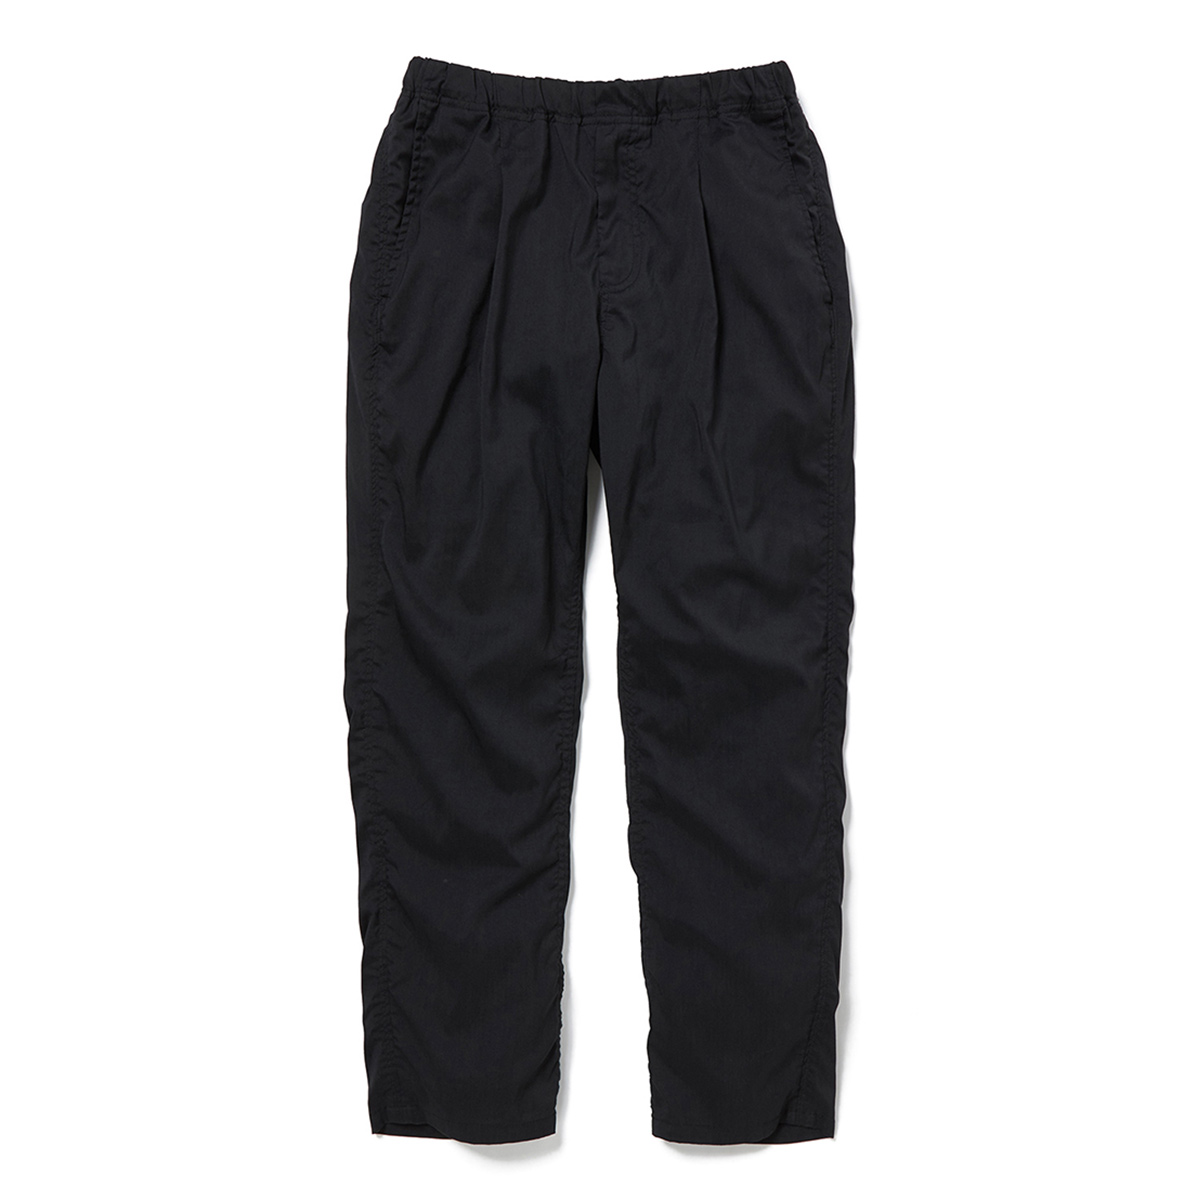 nonnative / MANAGER EASY PANTS RELAX FIT P/L/P POPLIN STRETCH -Black